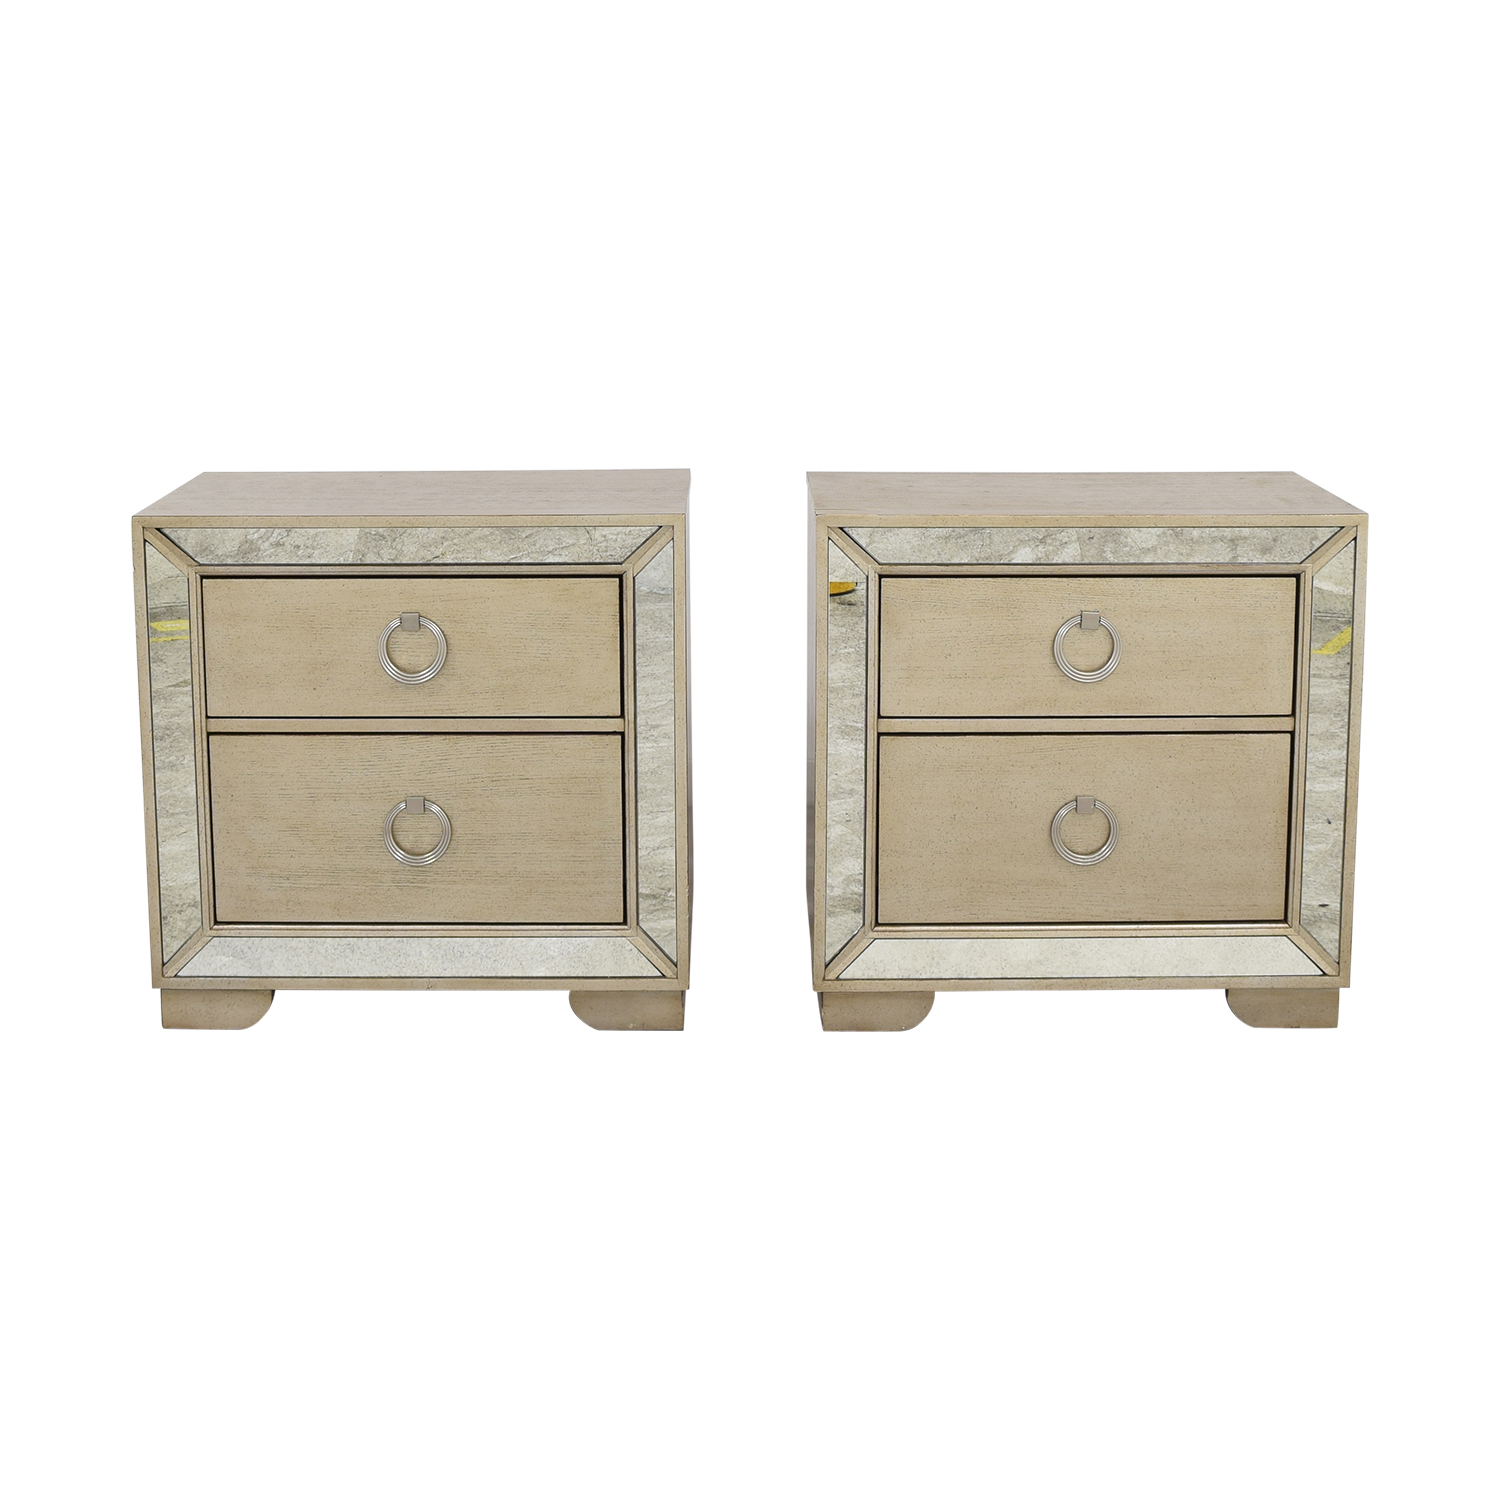 shop Macy's Macy's Ailey Nightstands online